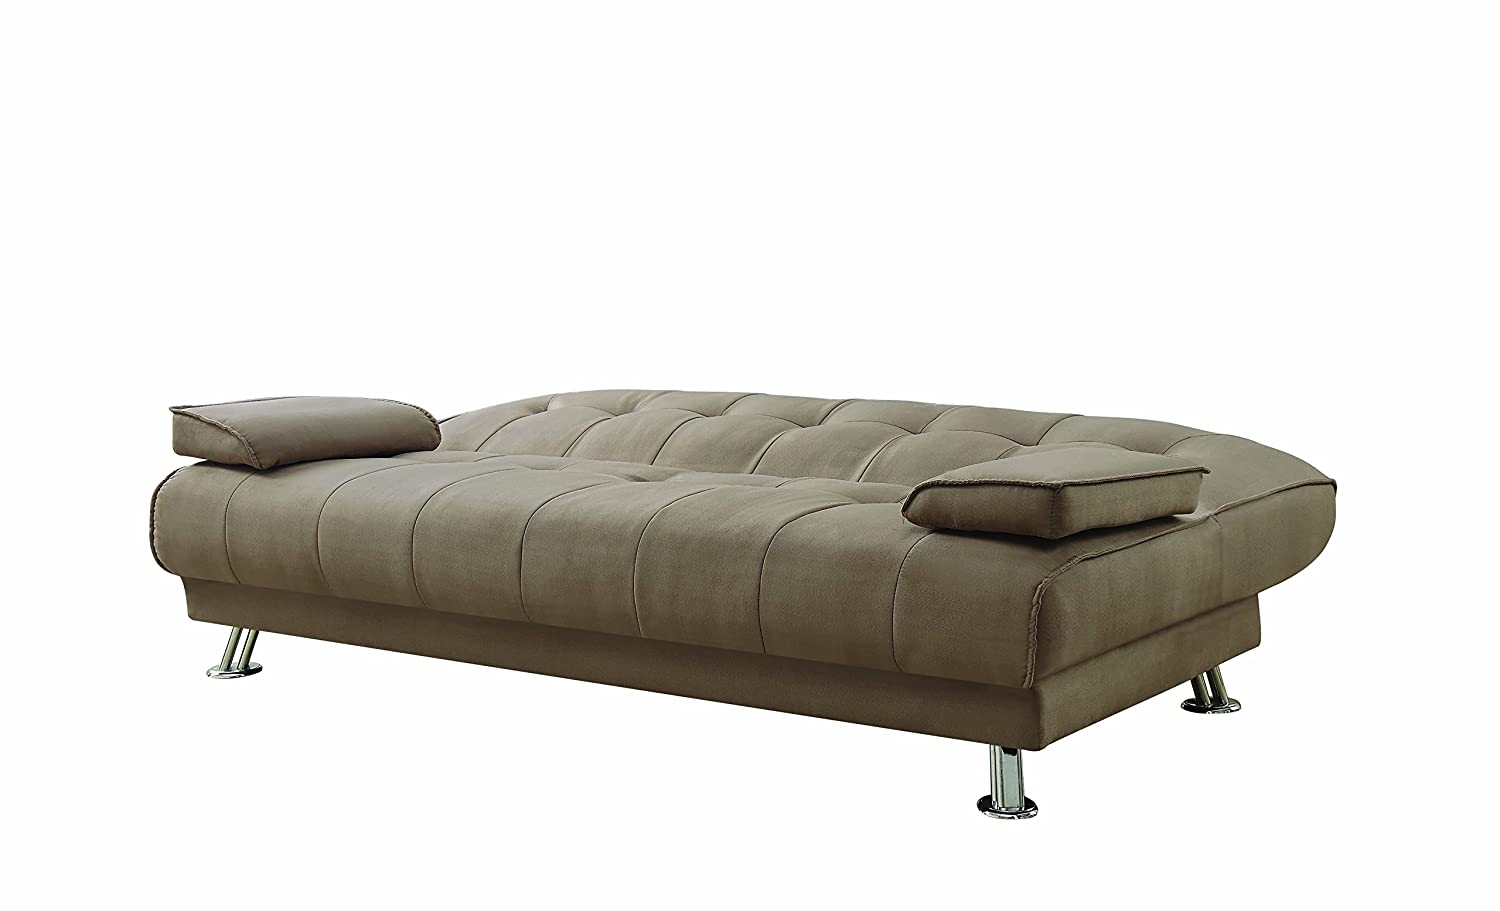 Convertible Sofa Bed with Removable Armrests Tan